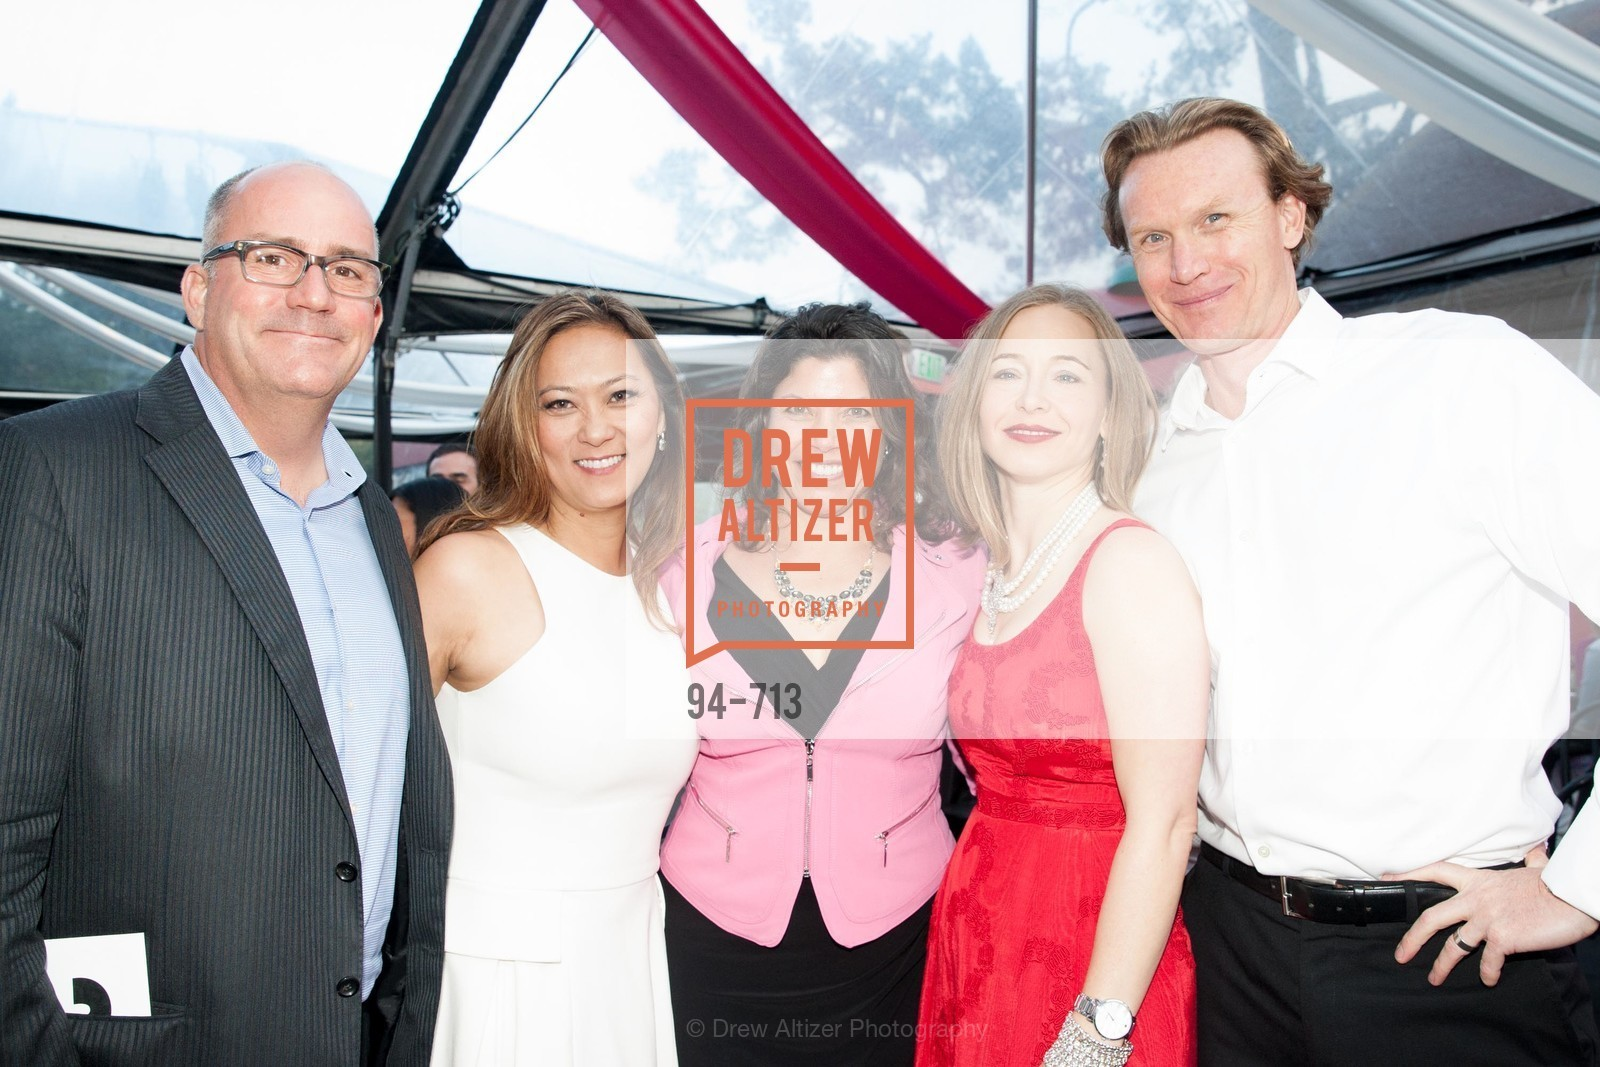 Russell Huebschle, Elizabeth Fullerton, Alisa Etzel, Mylea Charvat, Mark Wather, THE BAY AREA DISCOVERY MUSEUM'S Playdate 2015:  White to Bright, US, May 8th, 2015,Drew Altizer, Drew Altizer Photography, full-service agency, private events, San Francisco photographer, photographer california